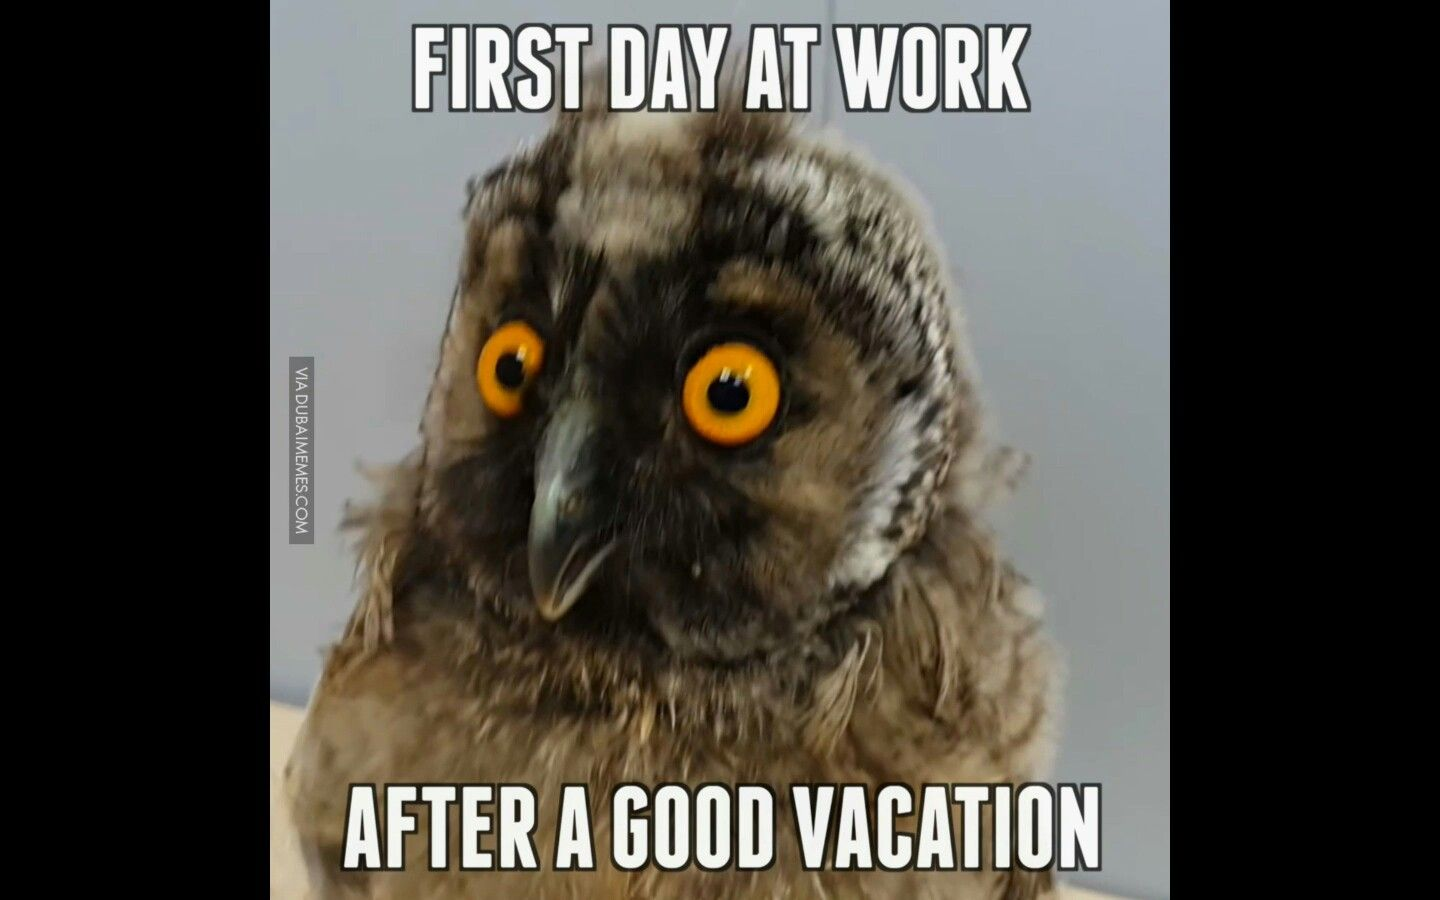 Pin By Ginger Blossom On Vacation Back To Work After Vacation First Day Of Work